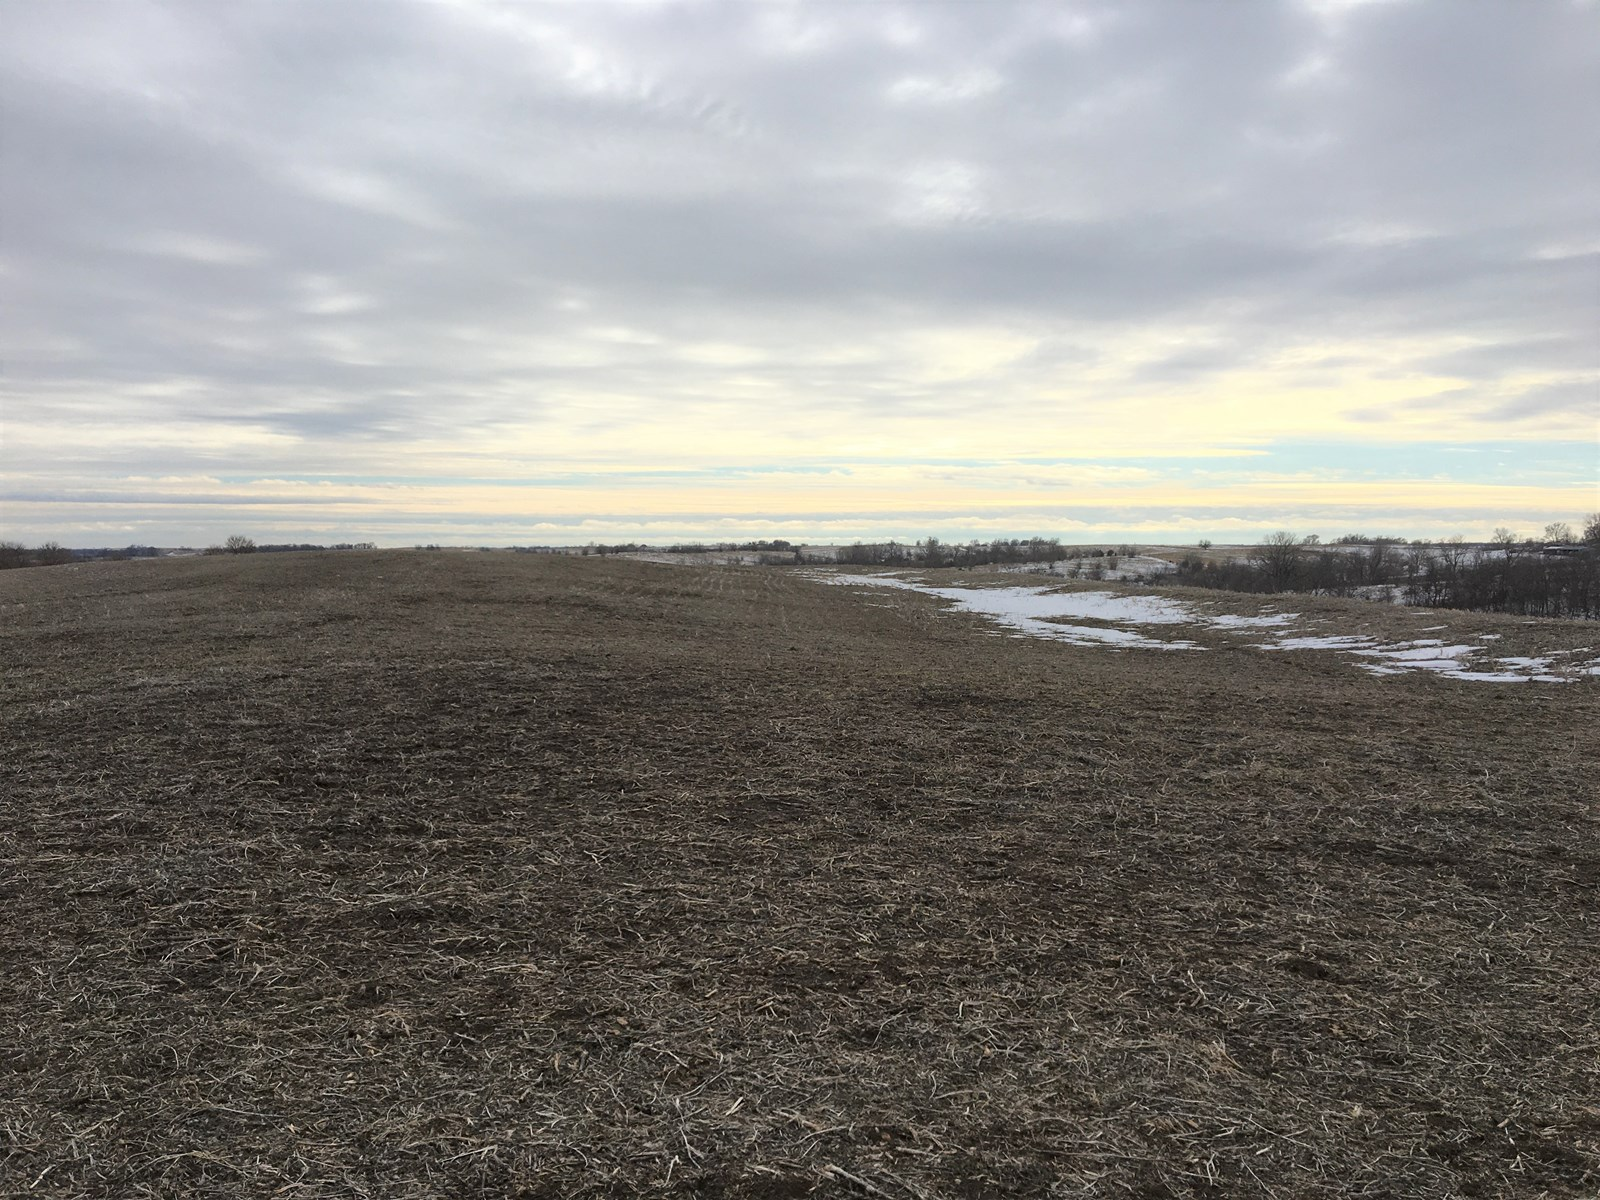 40+/- Acres, Terraced, Tiled, Highly Tillable – Tract 1 of 3